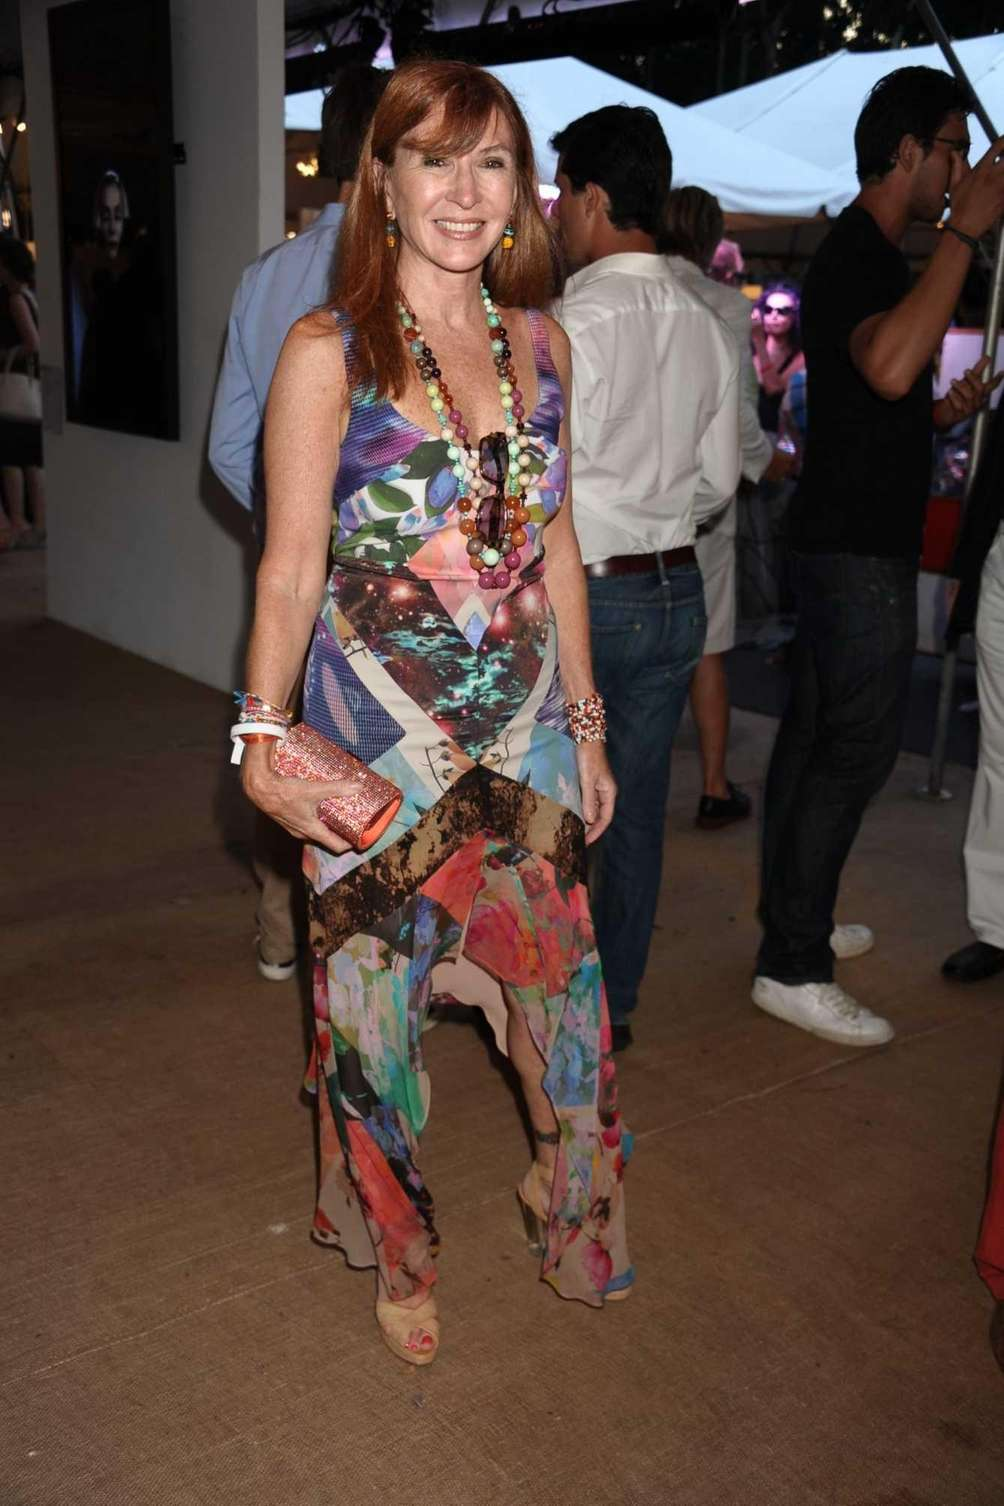 Fashion designer Nicole Miller attends Devil's Heaven, the